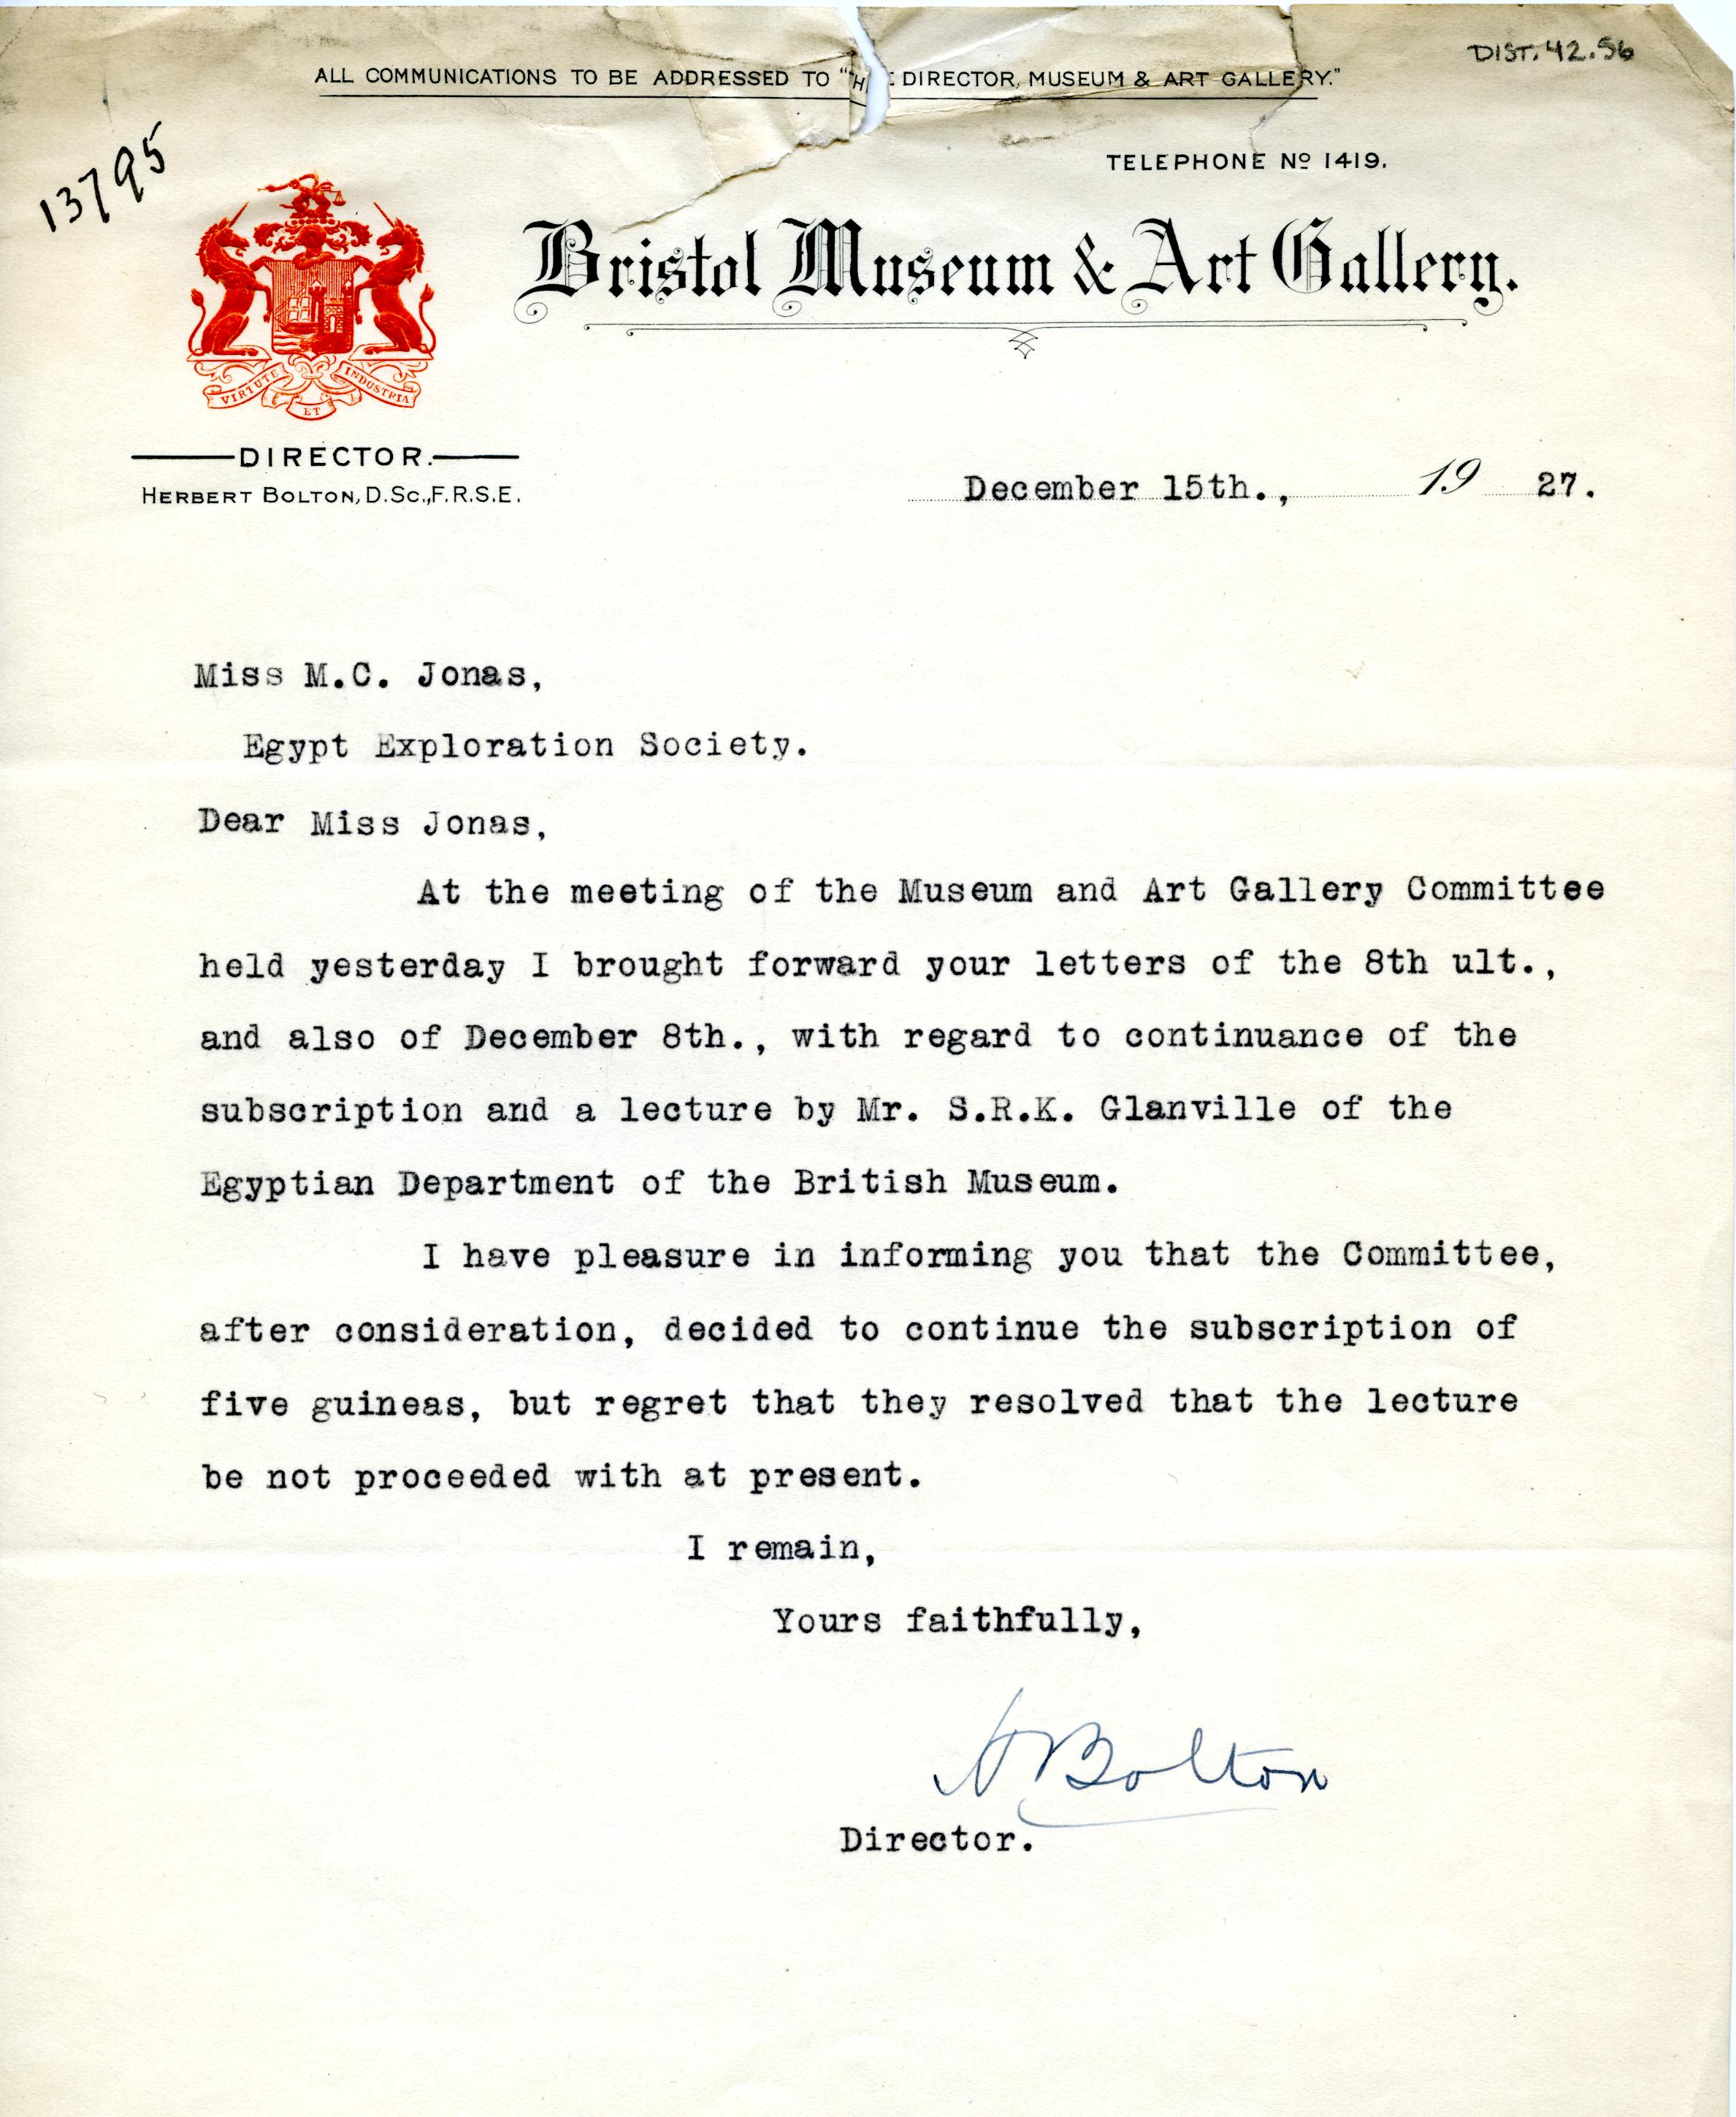 1922-71 Miscellaneous correspondence with museums DIST.42.56